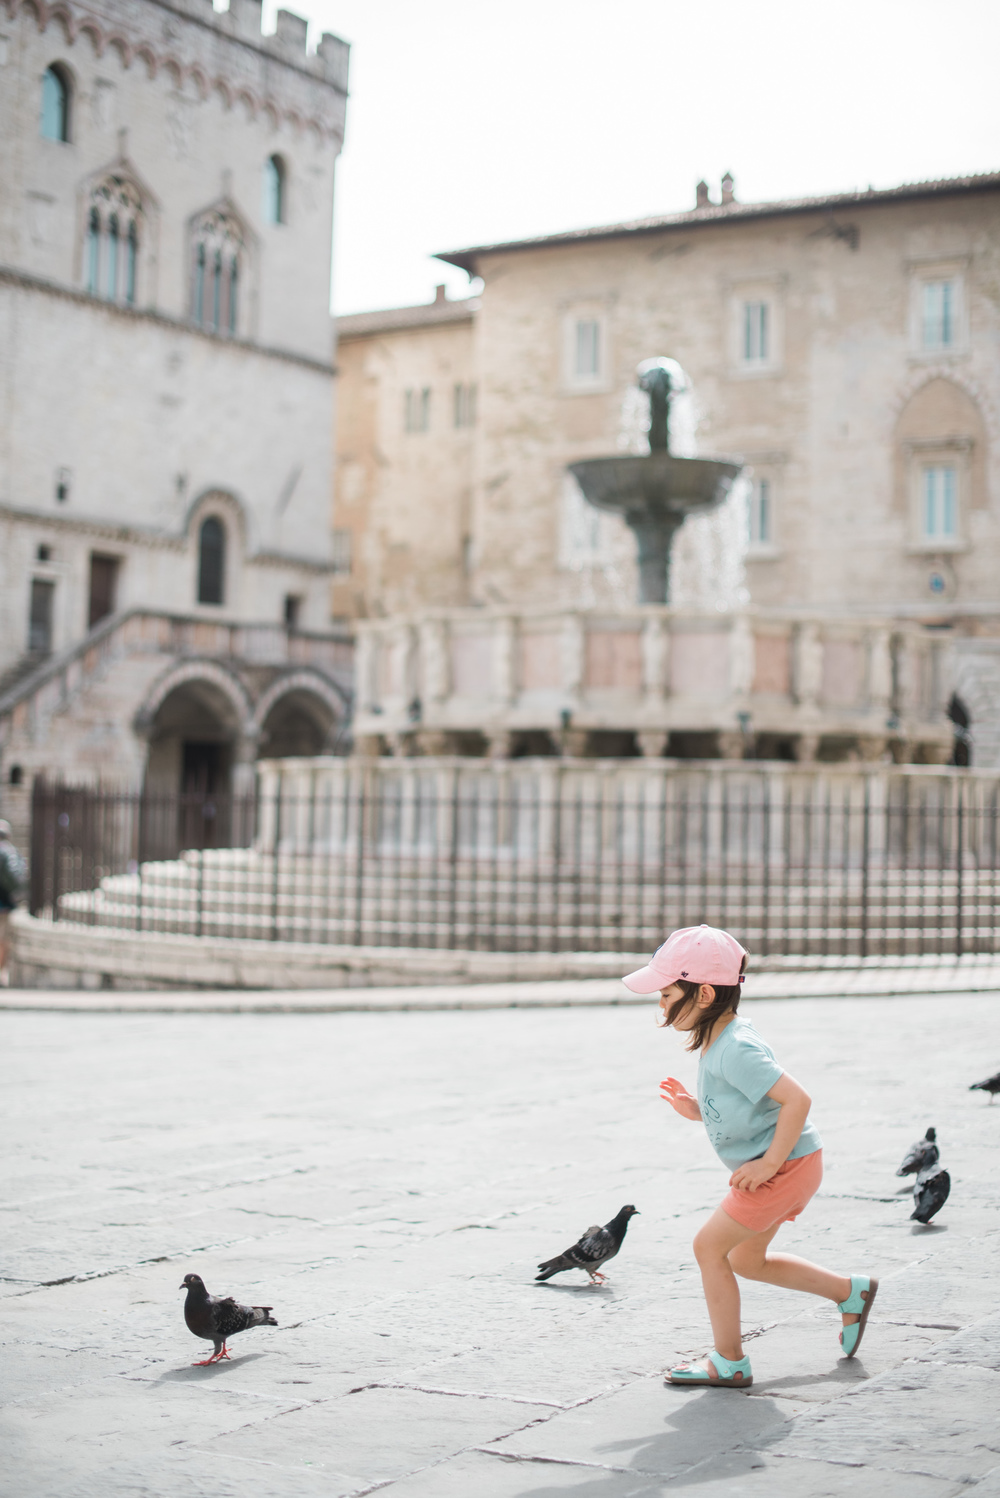 Our little girl, clad in merino and exploring an Italian plaza.